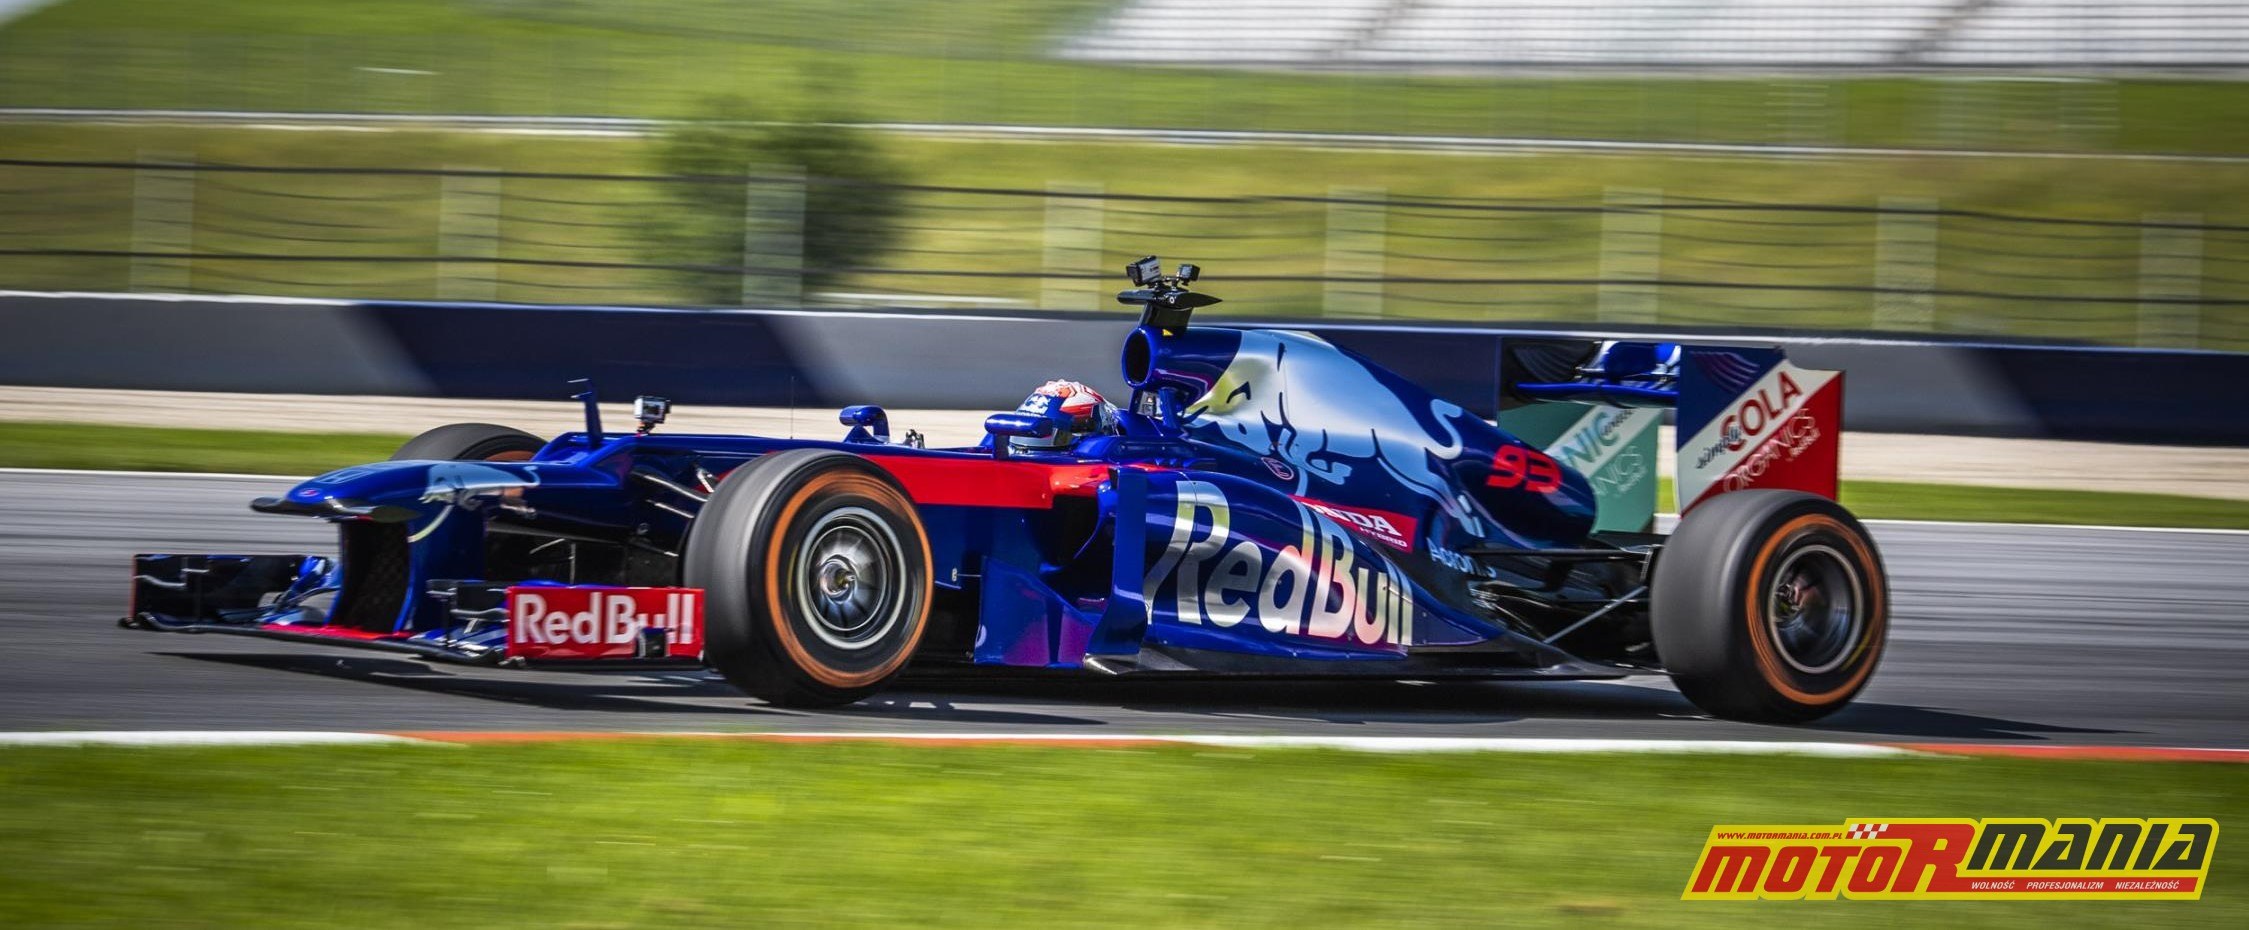 Marquez F1 toro rosso 2018 red bull ring (3)